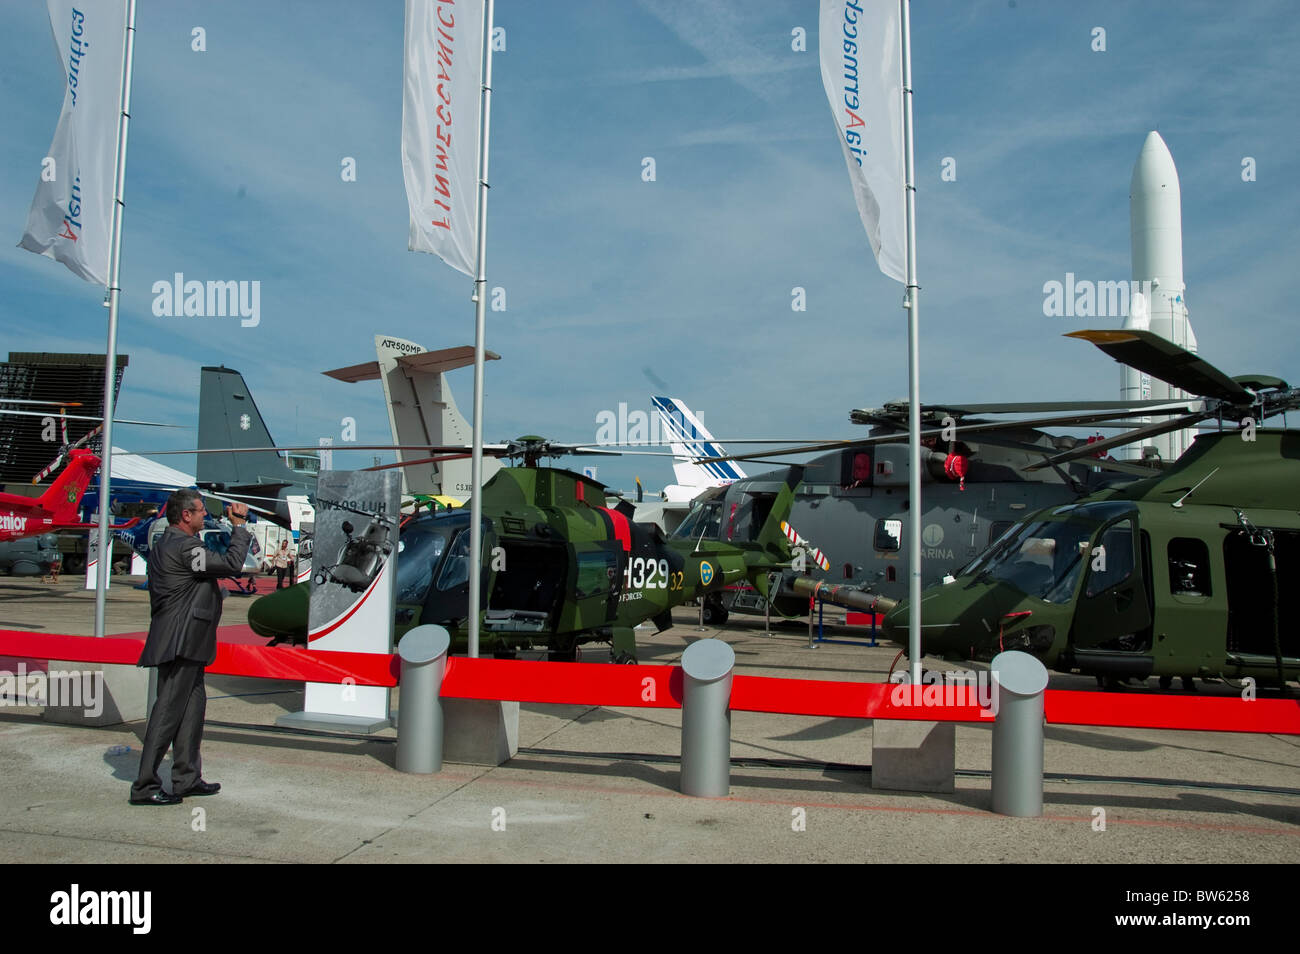 Paris, France, Trade Show, Businessmen at Paris Air Show at the Bourget Airport, Looking at Military Helicopters - Stock Image